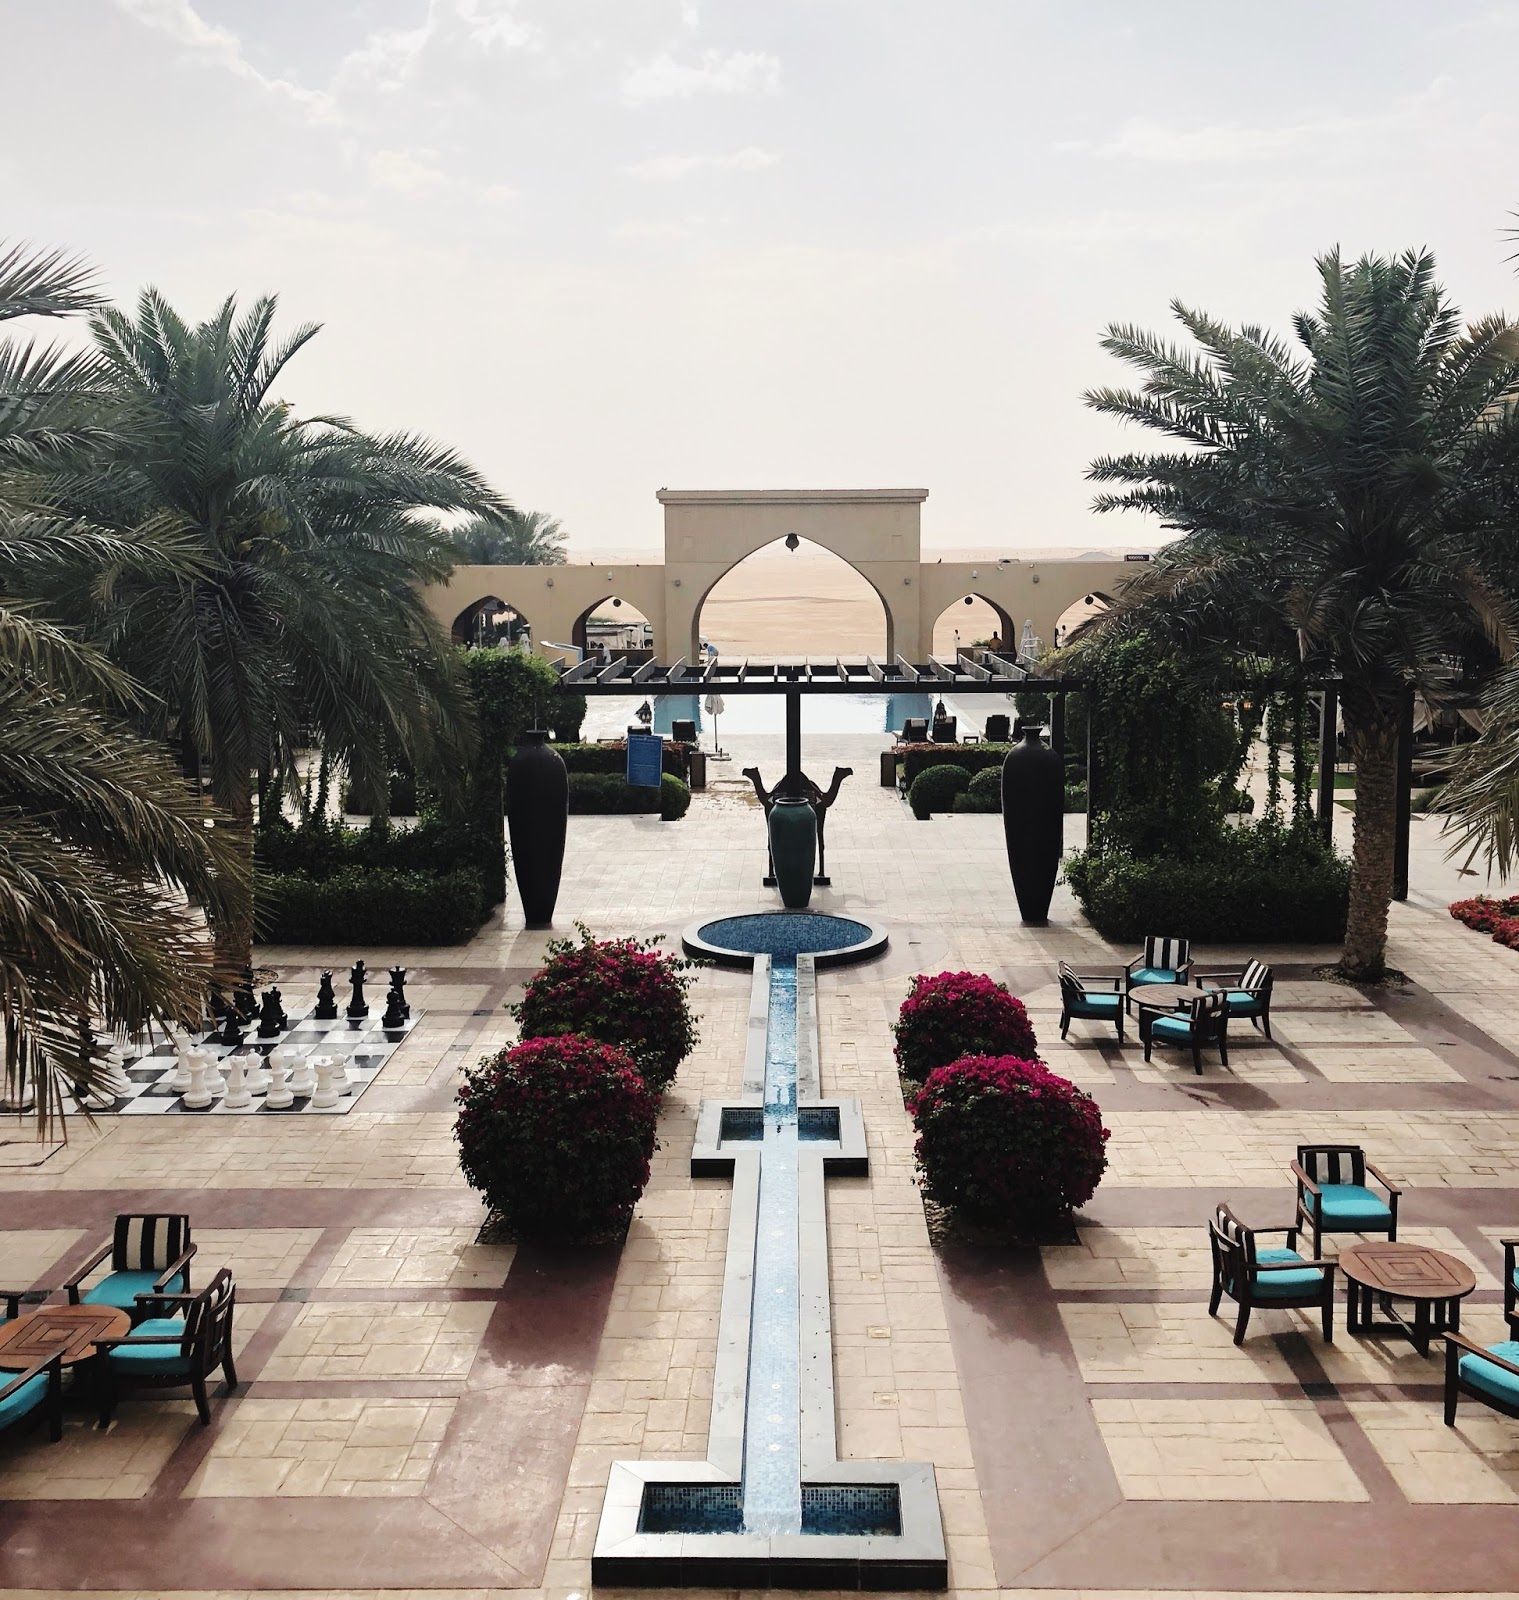 ourdubalilife.com Staycation Guide to Abu Dhabi